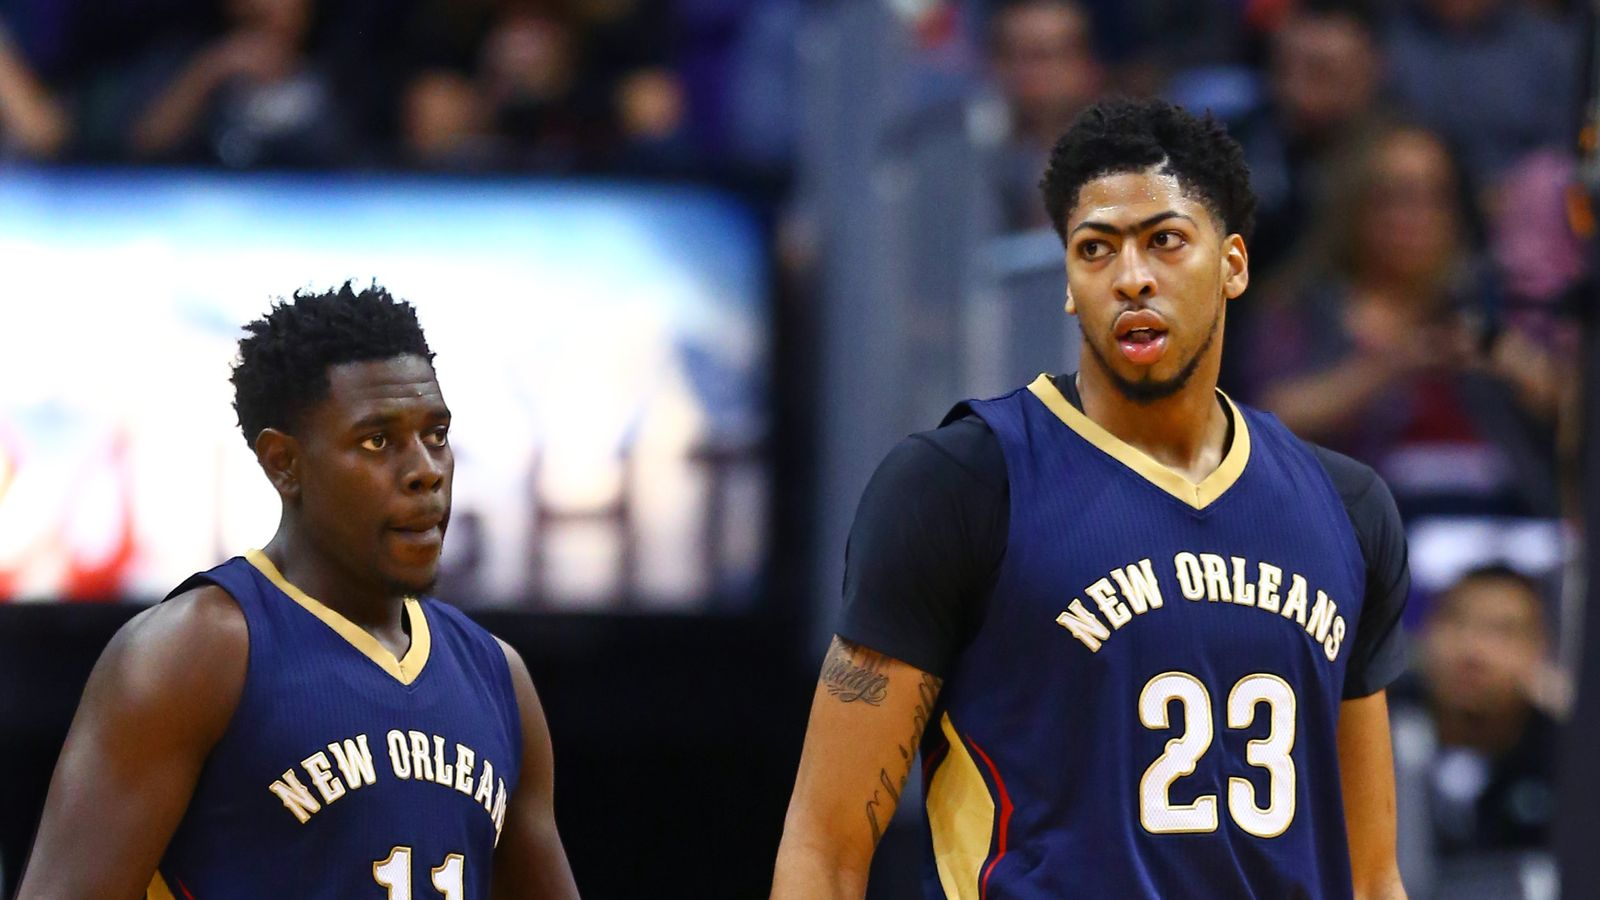 BBC, Pelicans, players